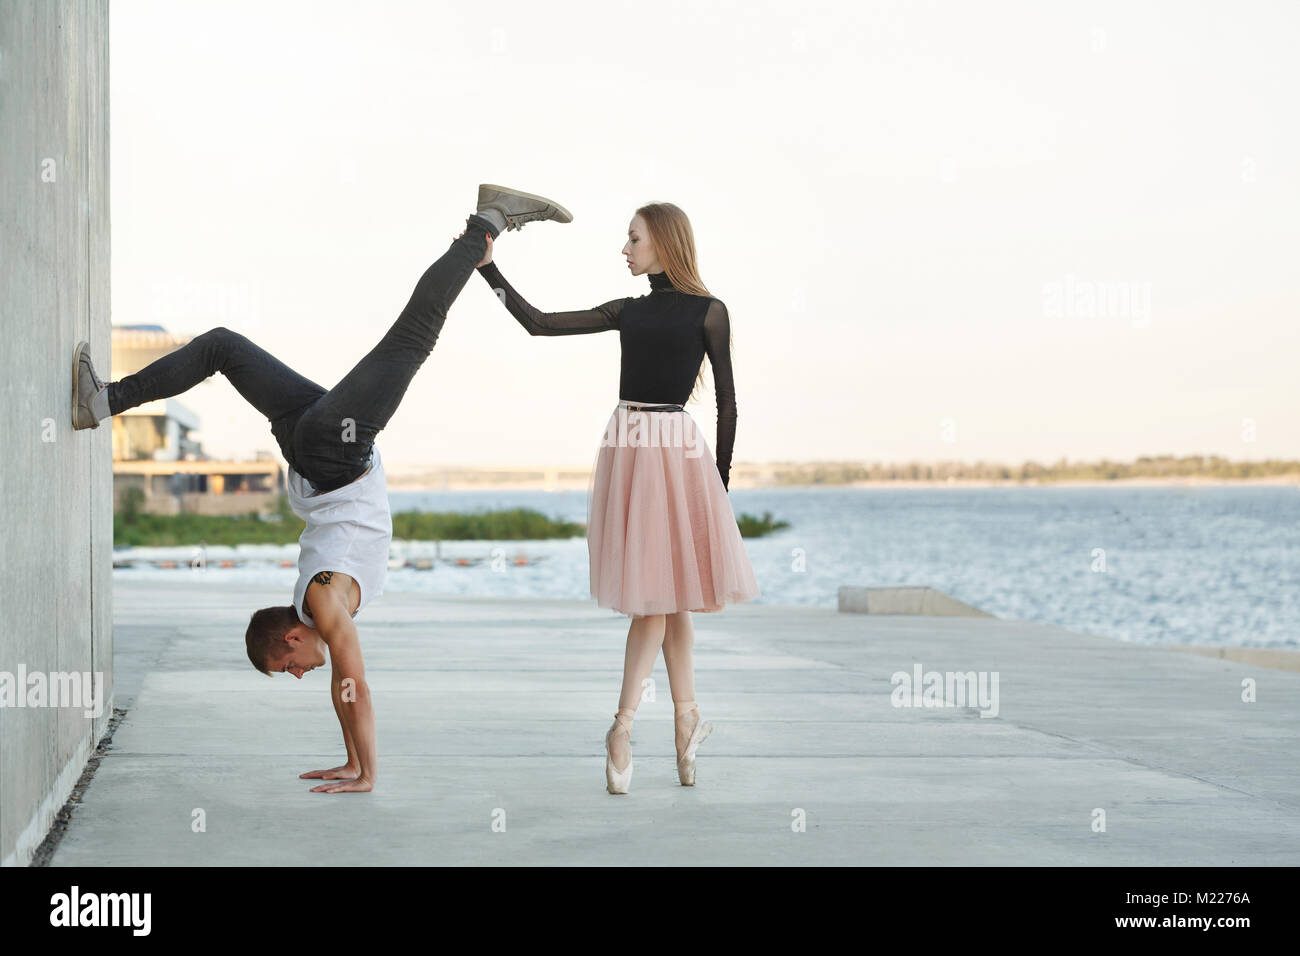 A slender ballerina dances with a modern dancer. Dating lovers. Passion and romance of dance. He stands on his hands. - Stock Image